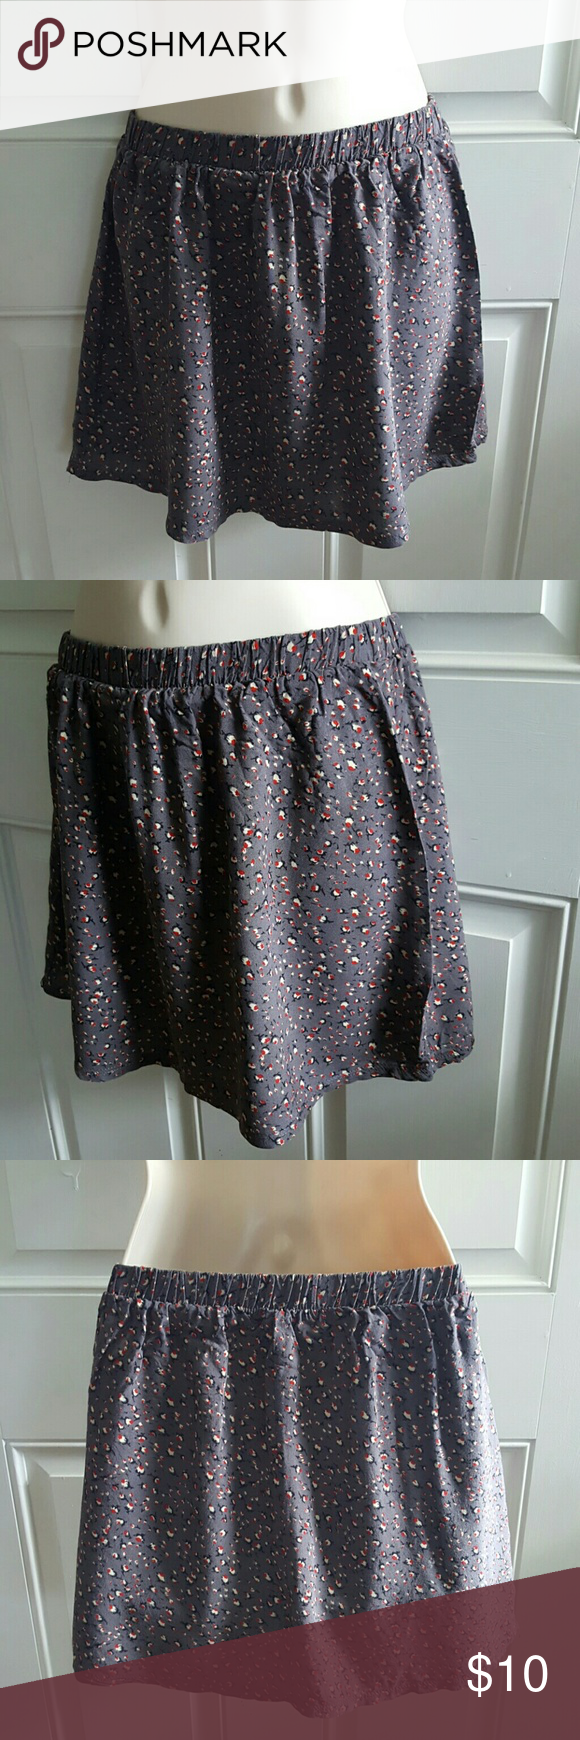 FOREVER 21 Gray Red Floral Print Mini Skirt Pull on. Elastic waist. Above knee, mini length.   Excellent Pre-Loved Condition! Forever 21 Skirts